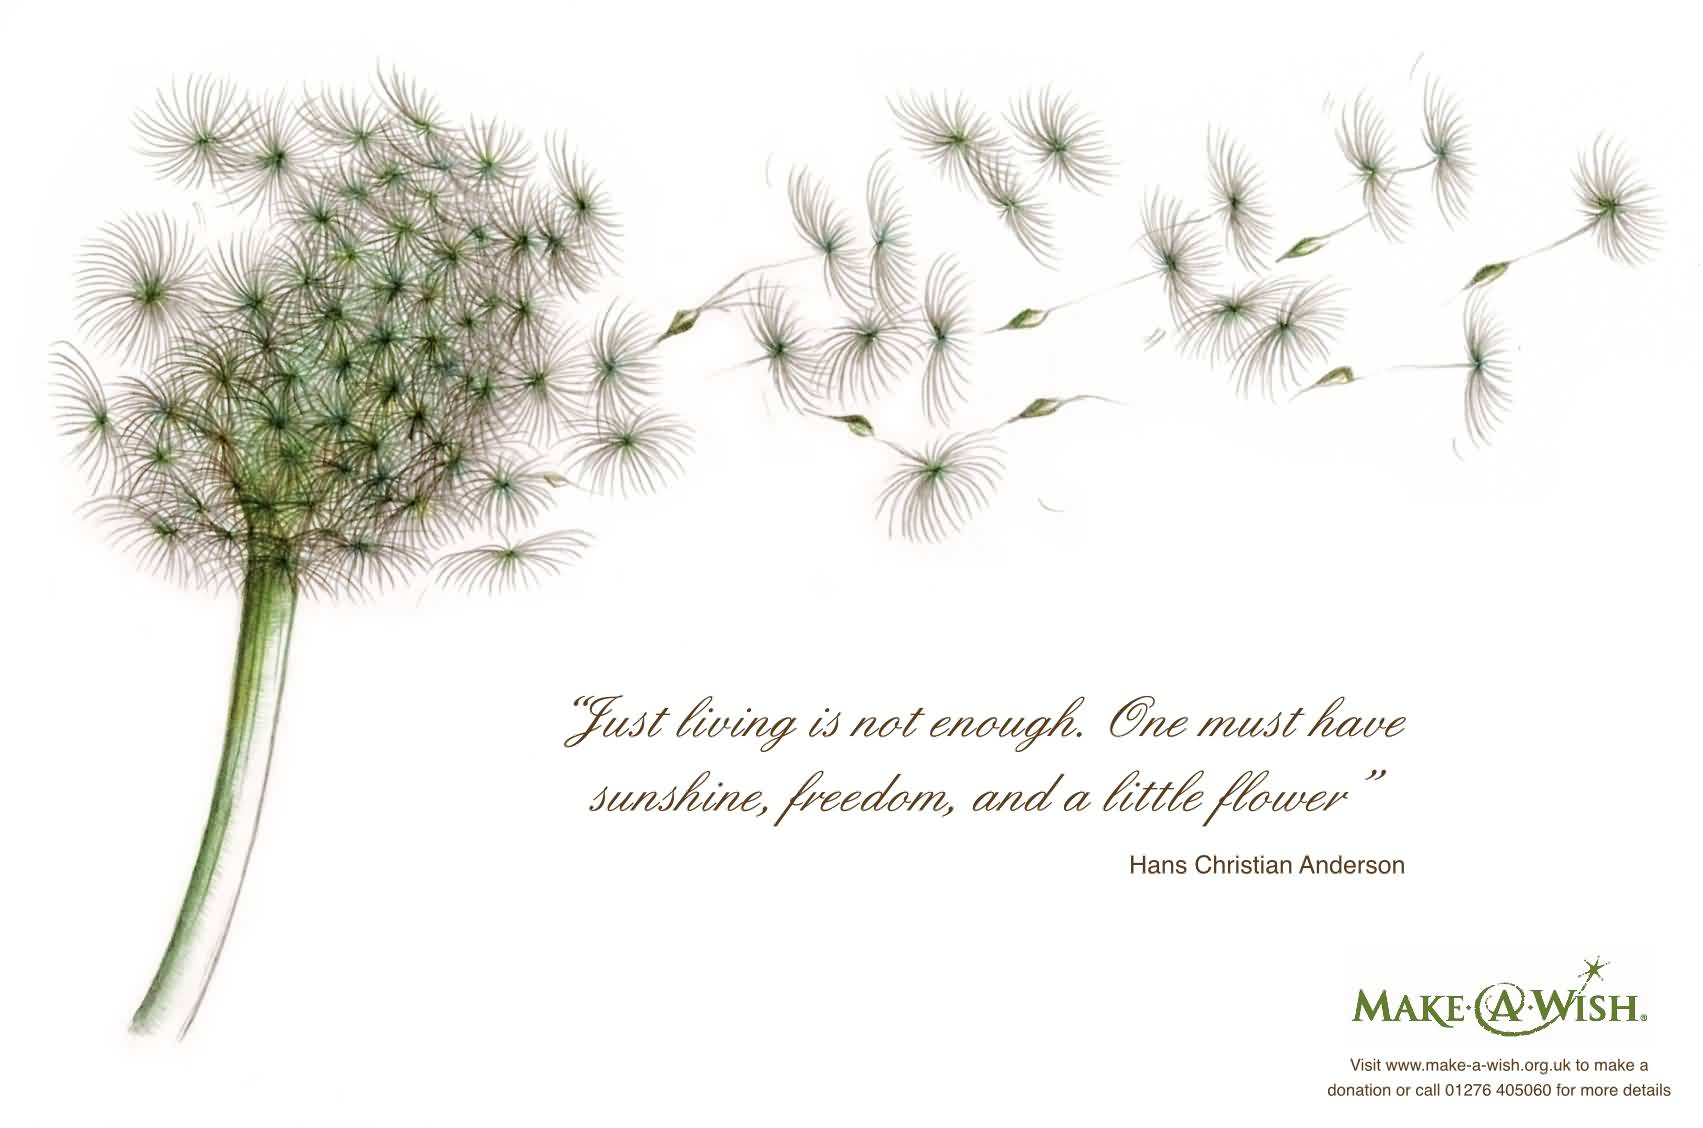 Beautiful Charity Quote By Hans Christian Anderson~ Just Living is not enough.